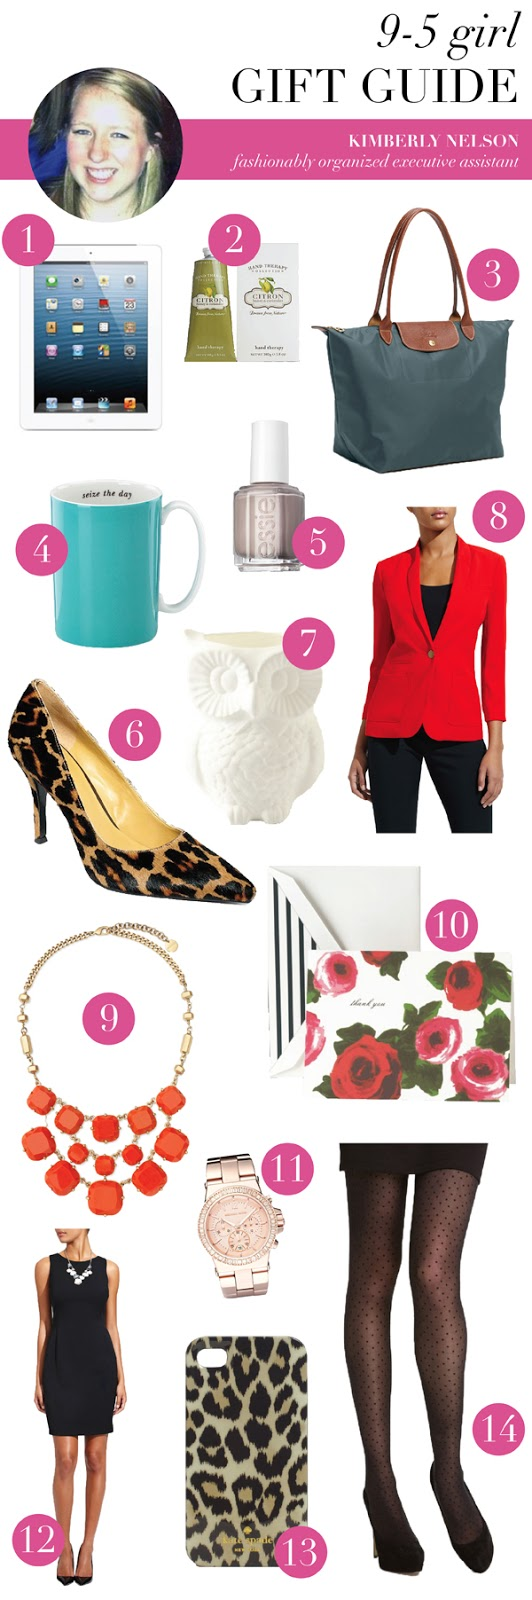 9-5 girl gift guide (via Holly Would)